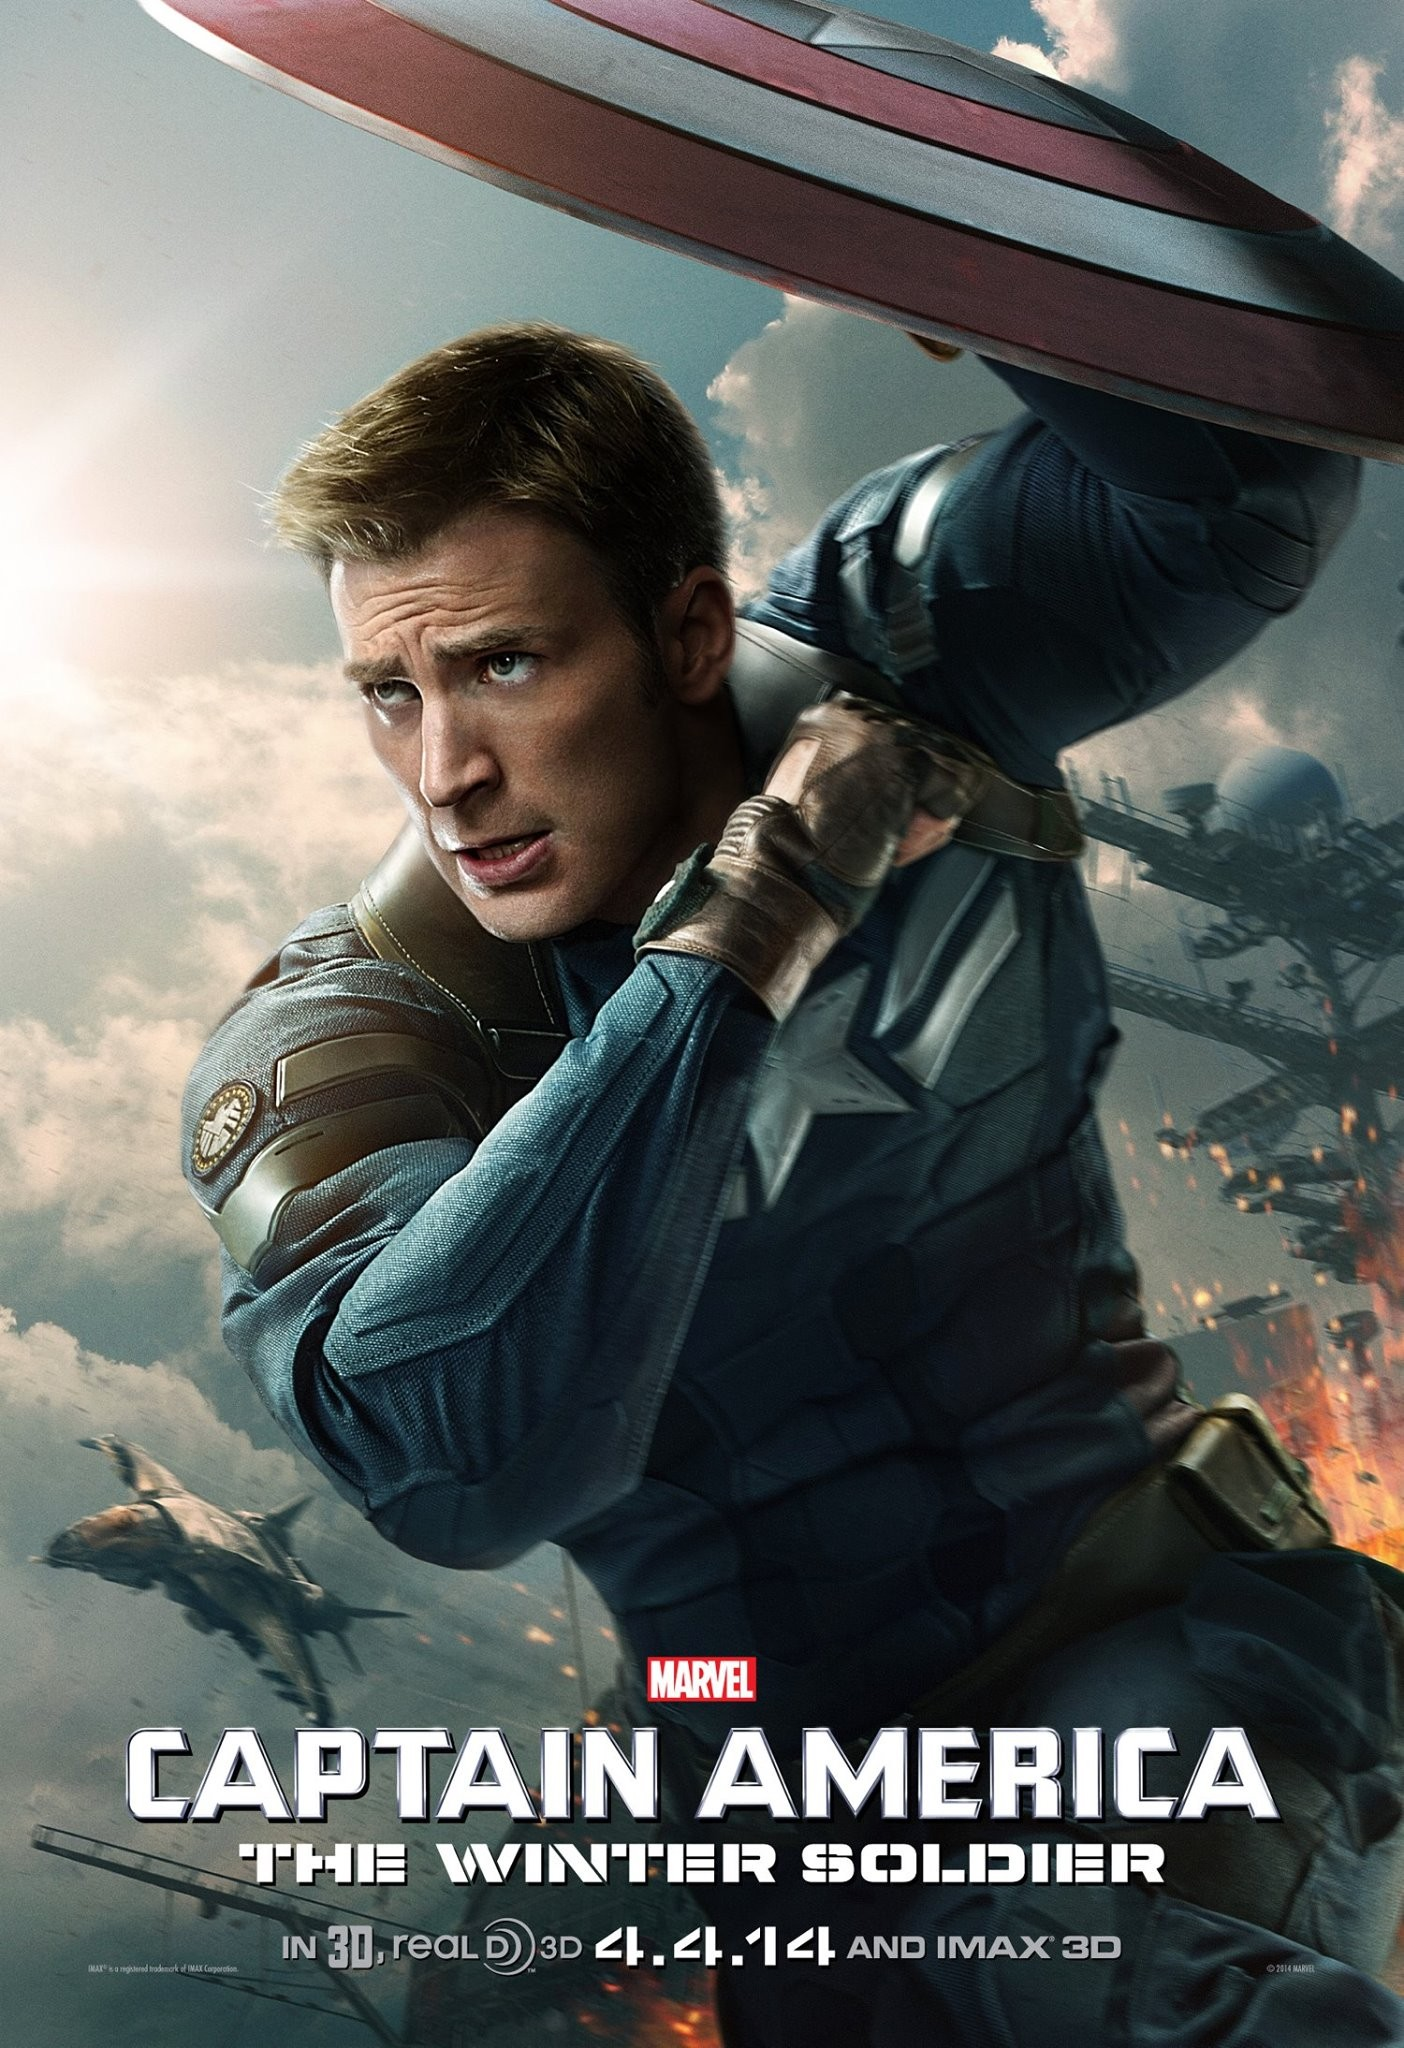 Captain America The Winter Soldier-Official Poster Banner PROMO XXLG-03MARÇO2014